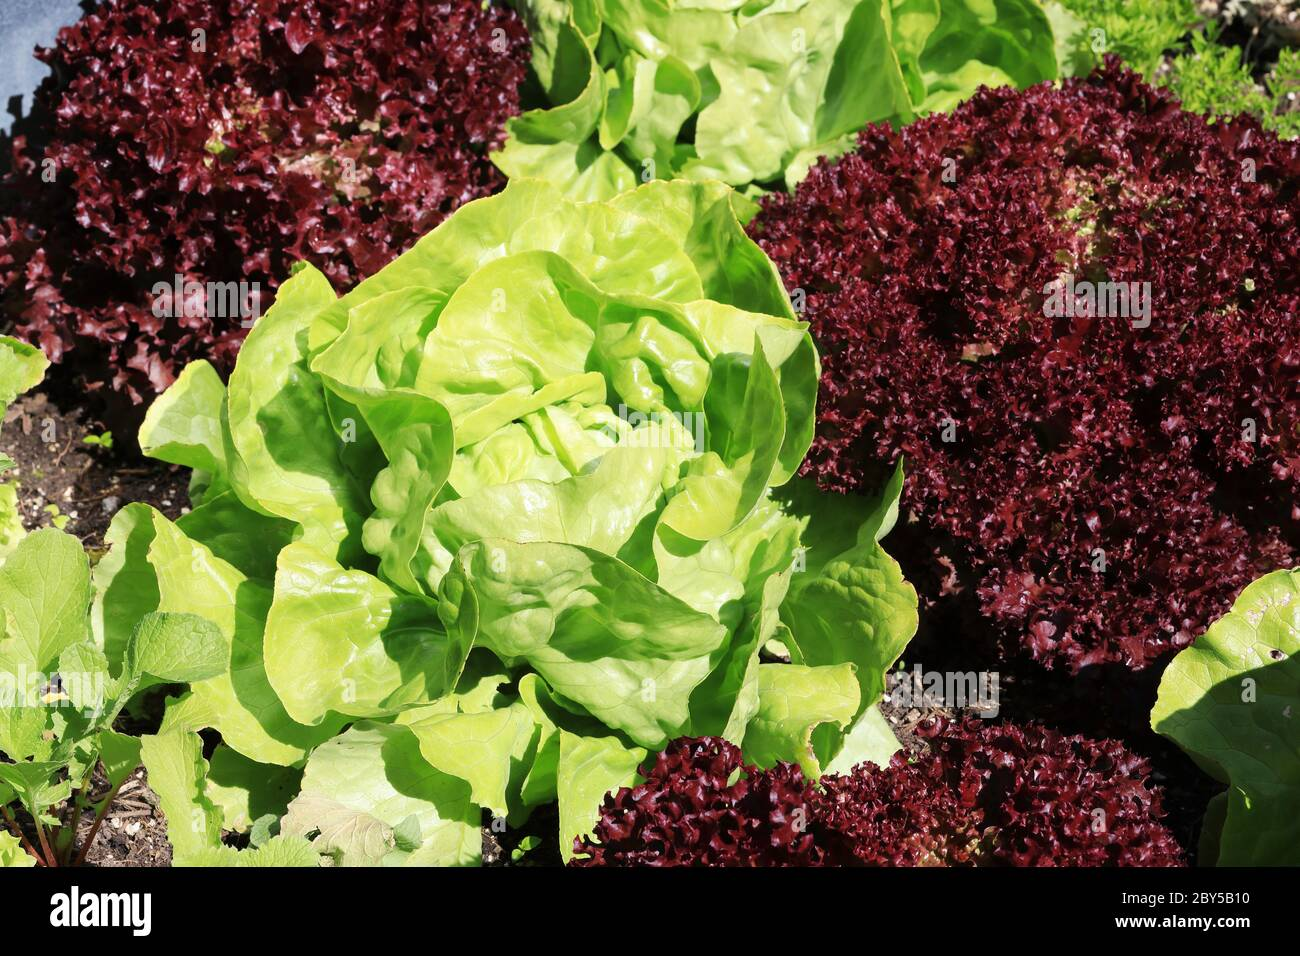 Organic lettuce and lollo rossa salad growing together in the garden Stock Photo